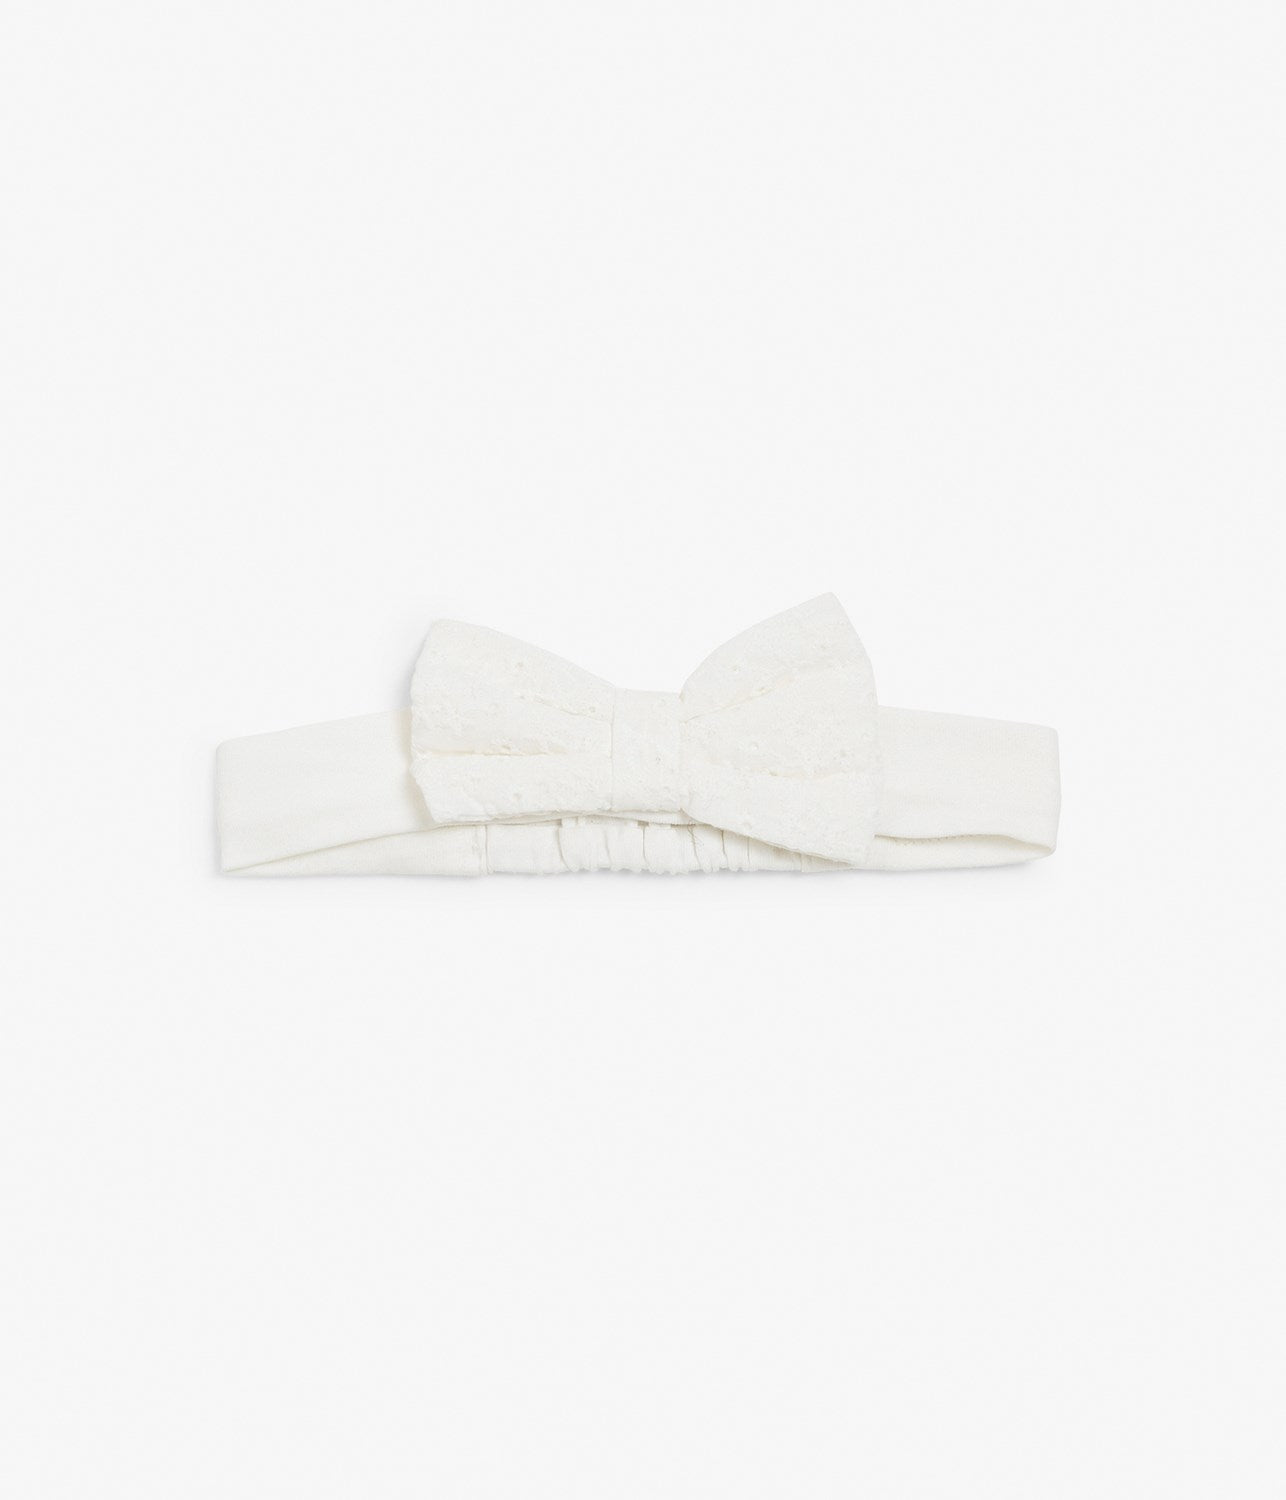 Headband with lace bow